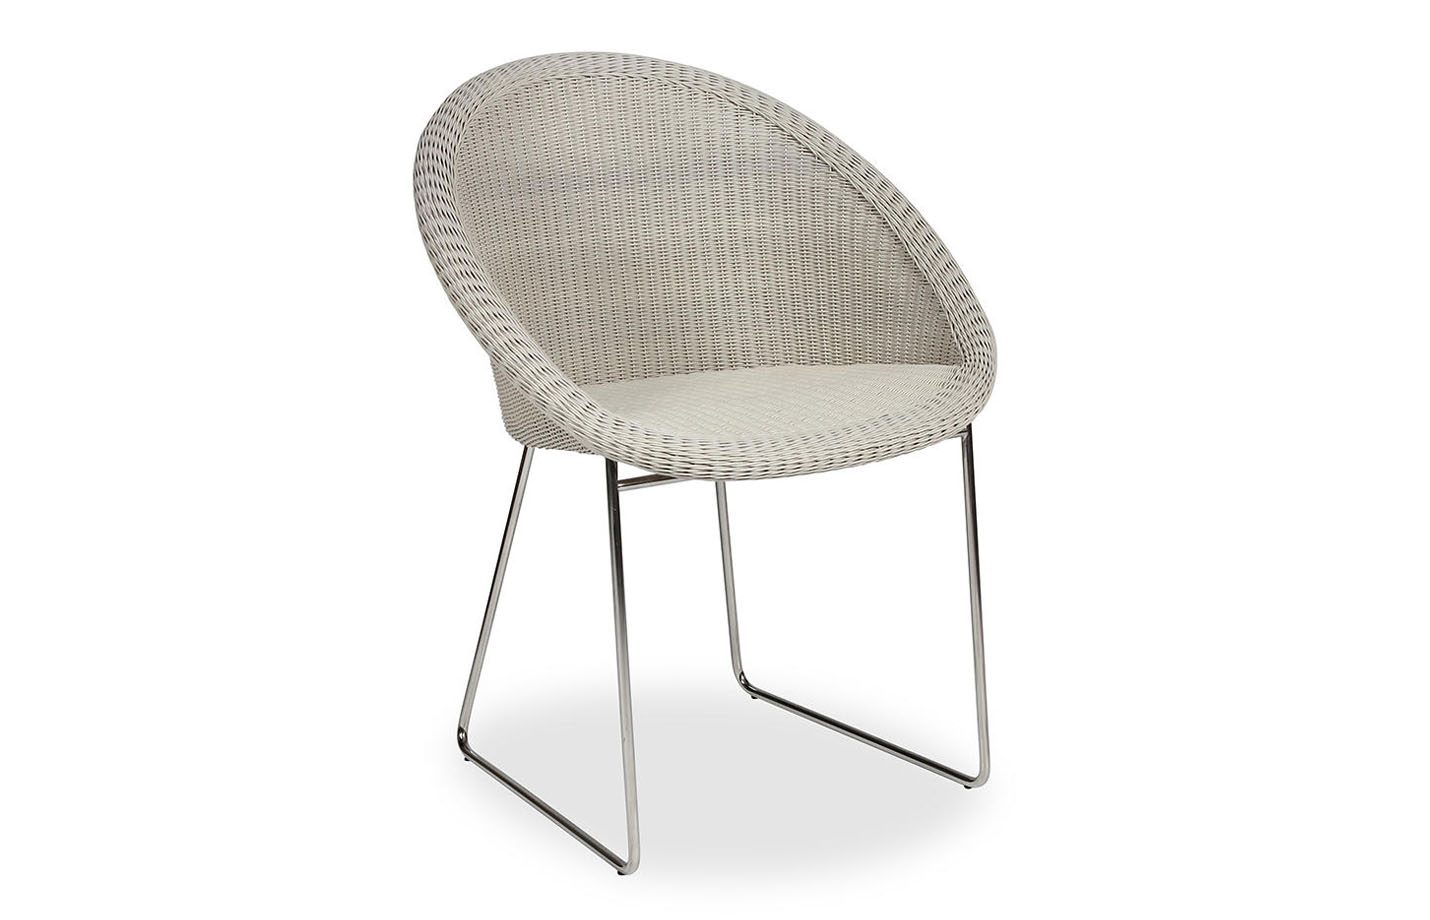 Gipsy-dining-chair-stainless-steel-base-04